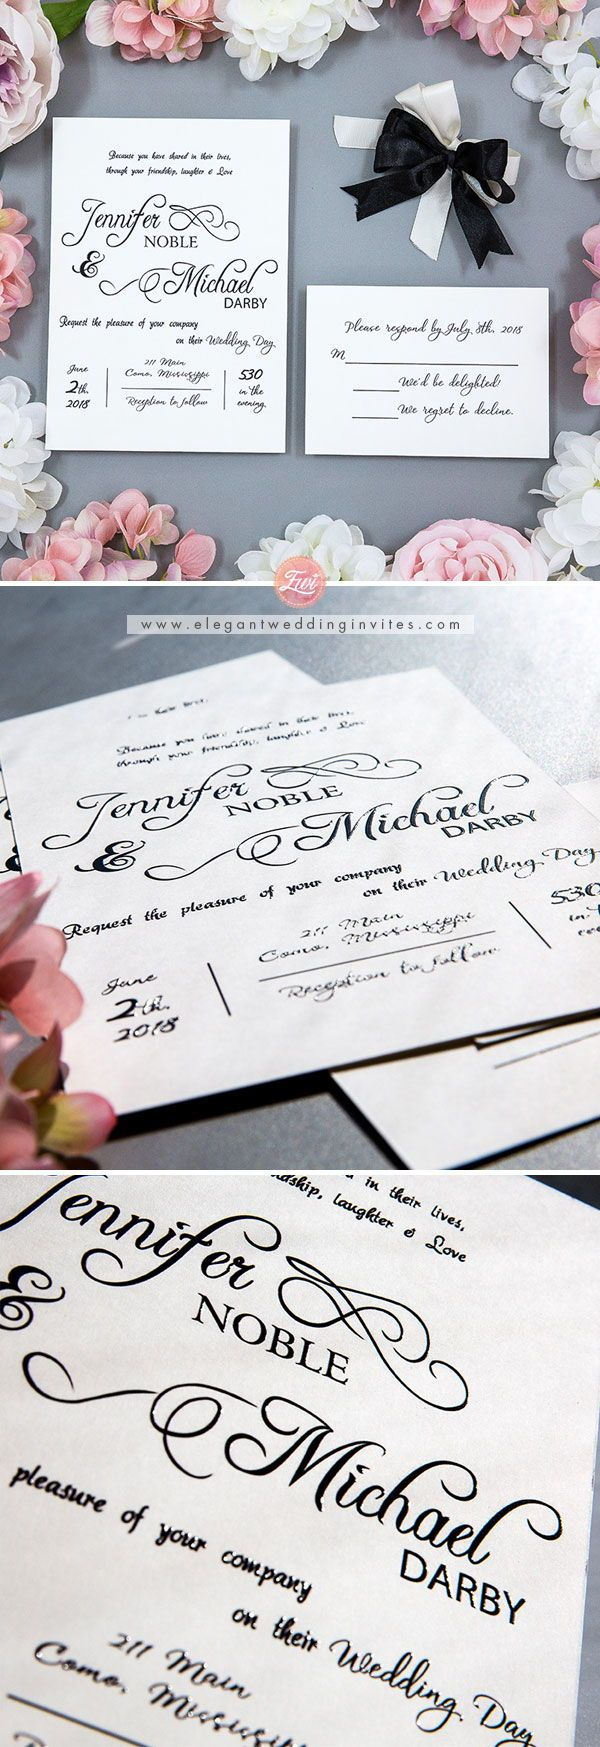 how to get directions for wedding invitations%0A Classic Black and White Handwriting UV Printing Wedding Invitations EWUV      UV  WeddingInvites  blackandwhitewedding